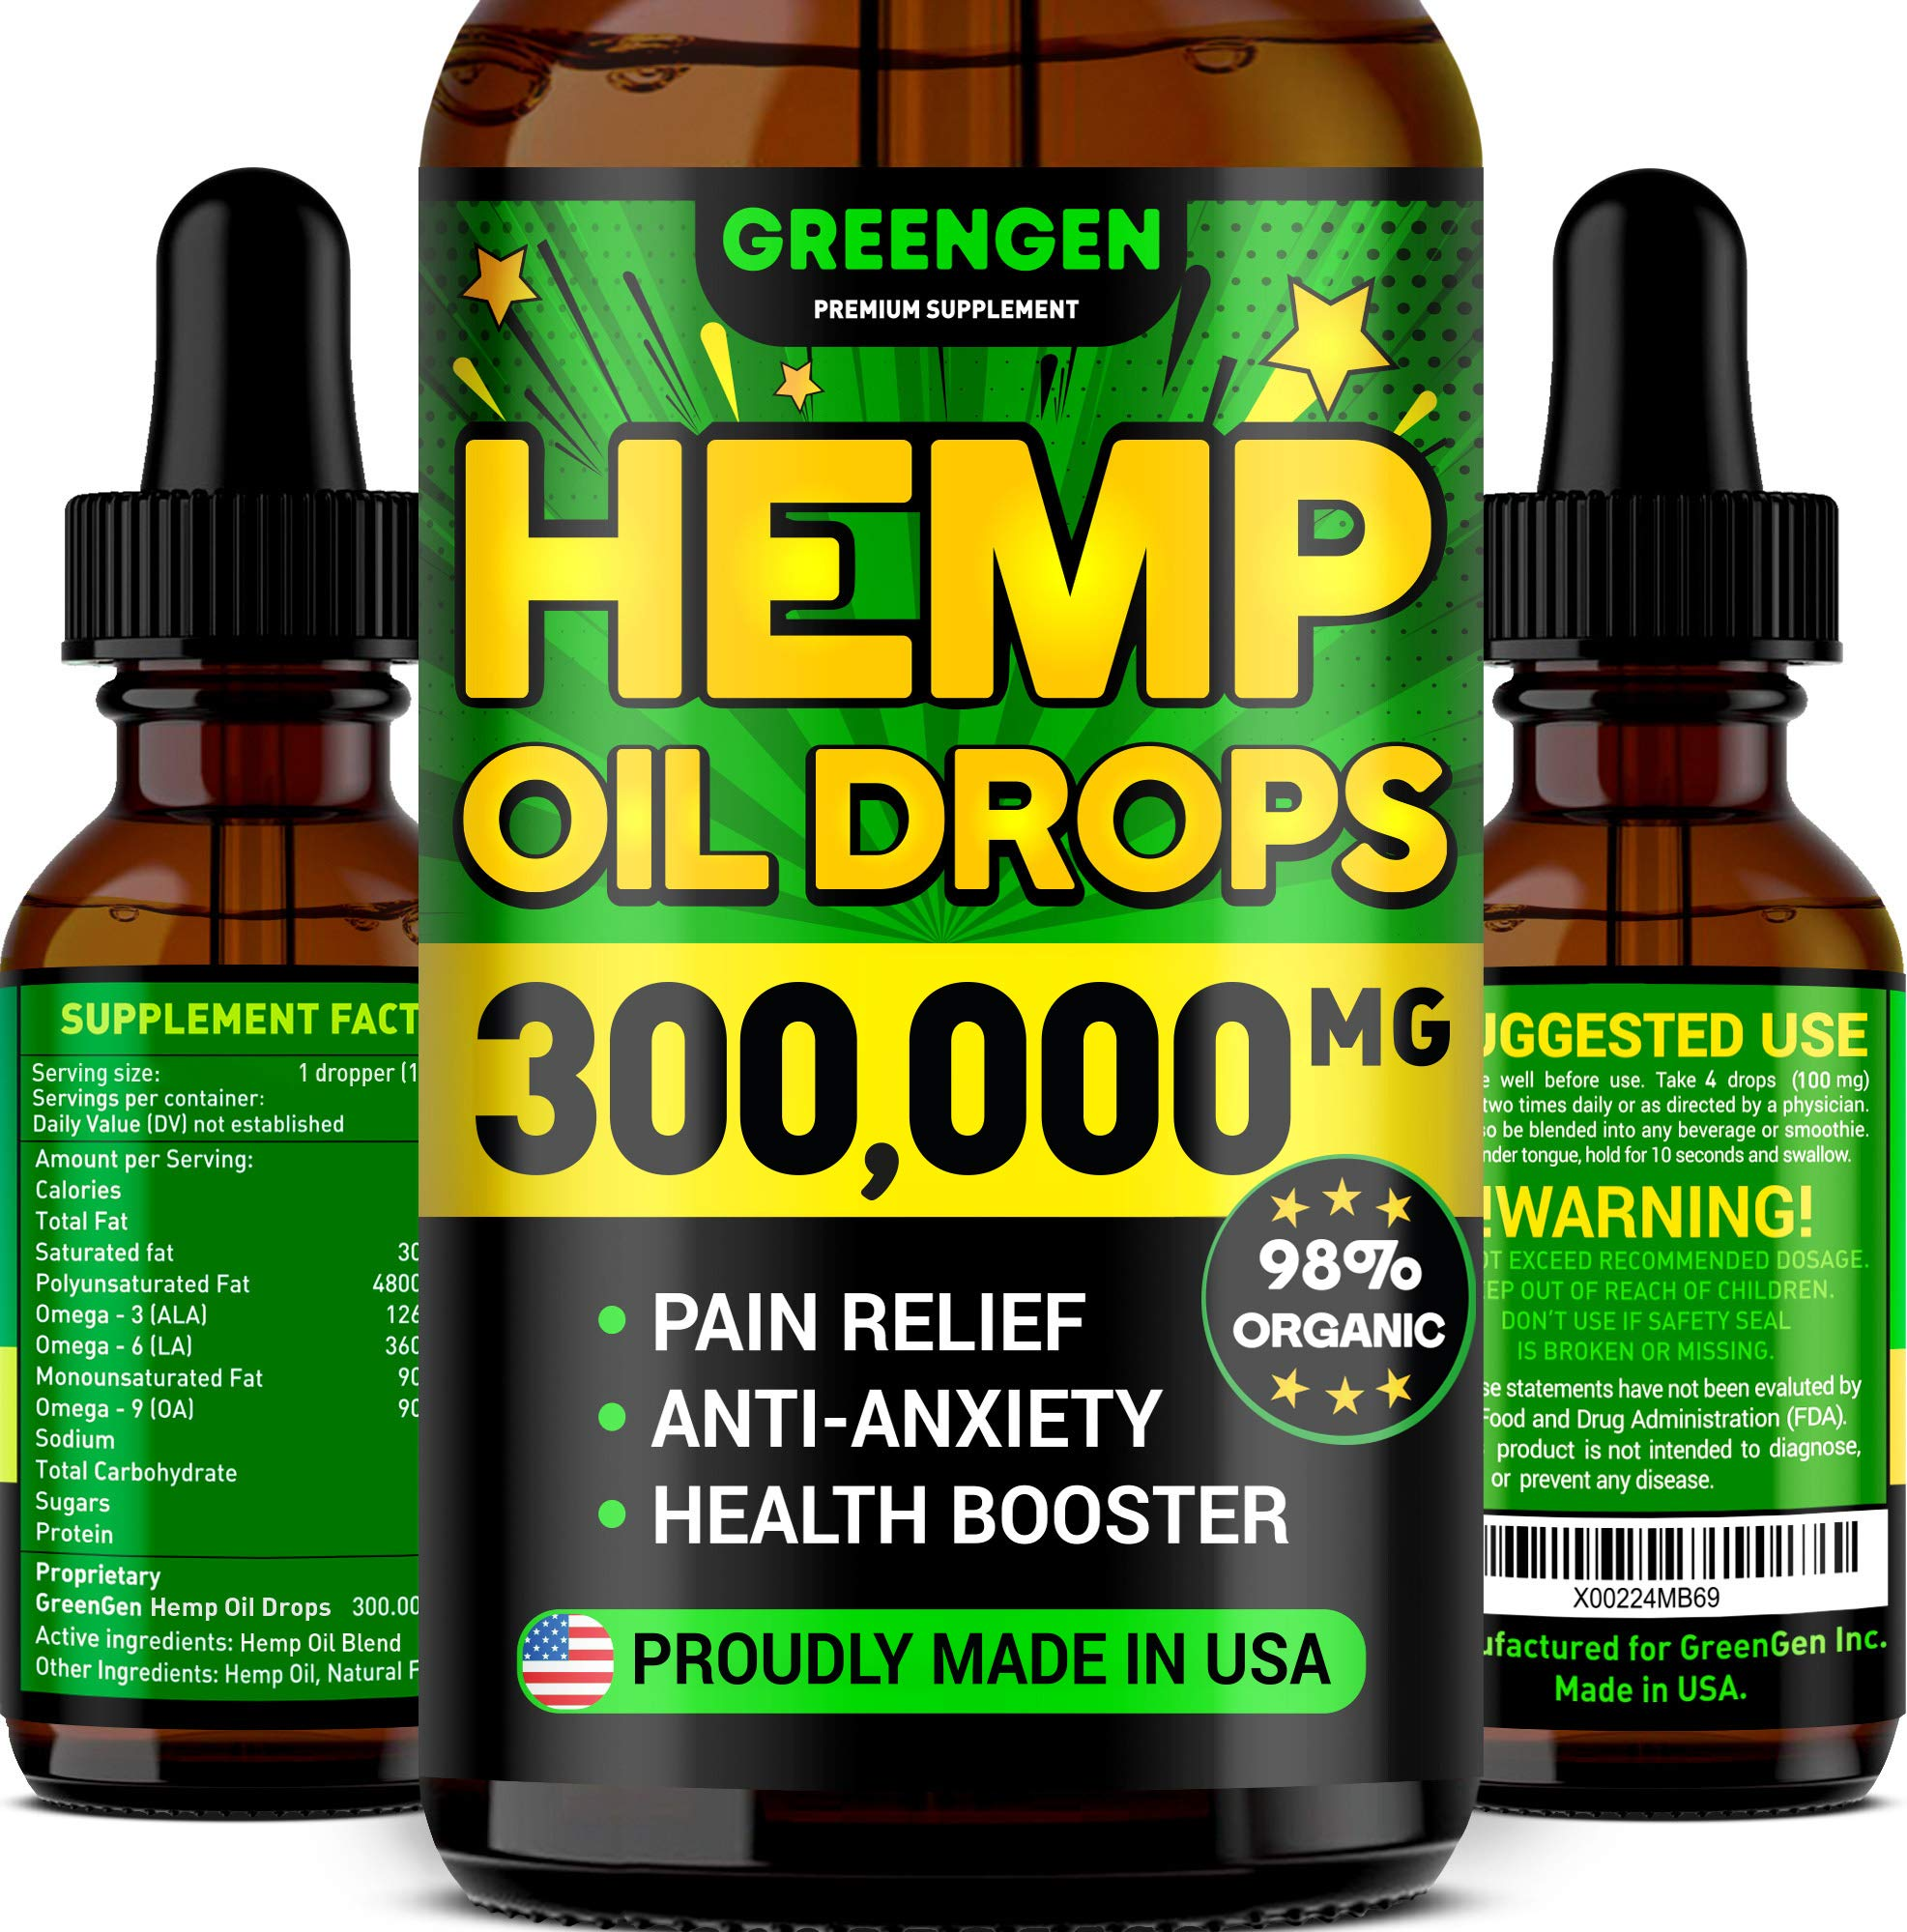 Hemp Oil 300,000mg for Stress Relief - Premium Superstrong Formula - Immunity & Mood Support - 100% Safe & Natural Ingredients - Provides Deep Sleep - Made in USA - Omega 3, 6 & 9 by GREENGEN